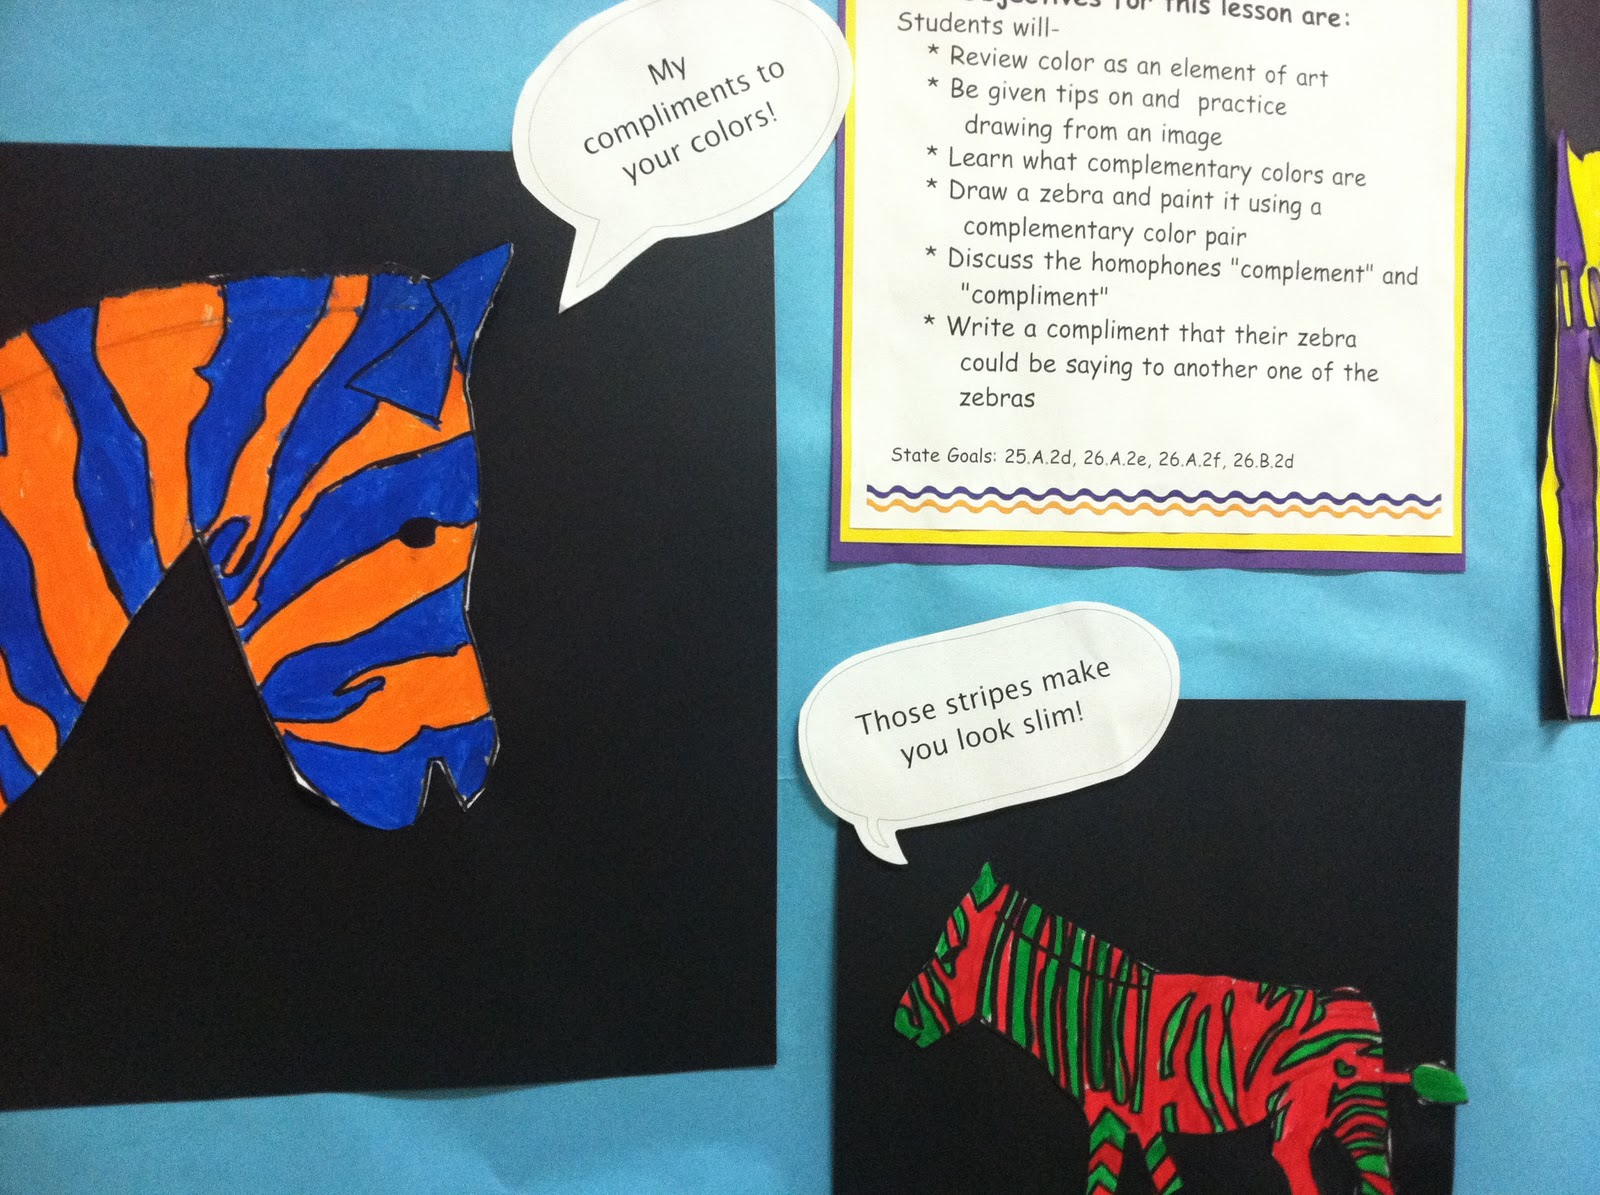 Line Art Lessons For Elementary : The smartteacher resource complementary zebras a th grade